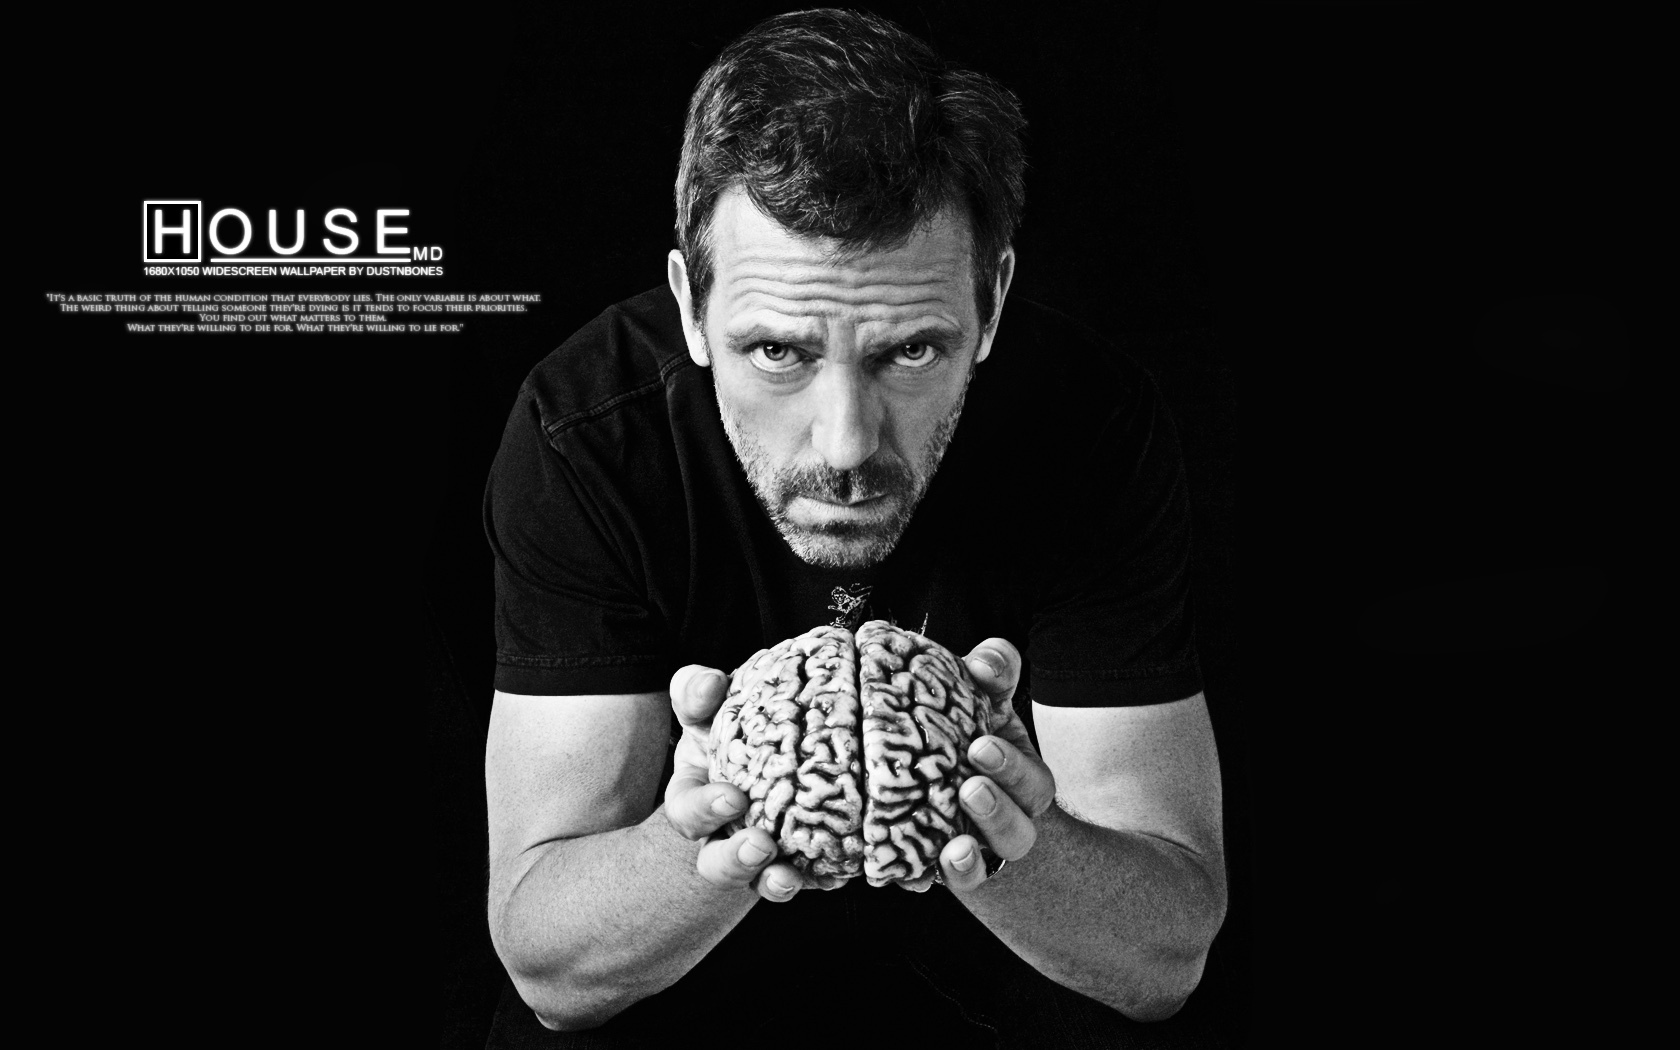 House Widescreen Wallpaper - House M.D. Wallpaper (6490277